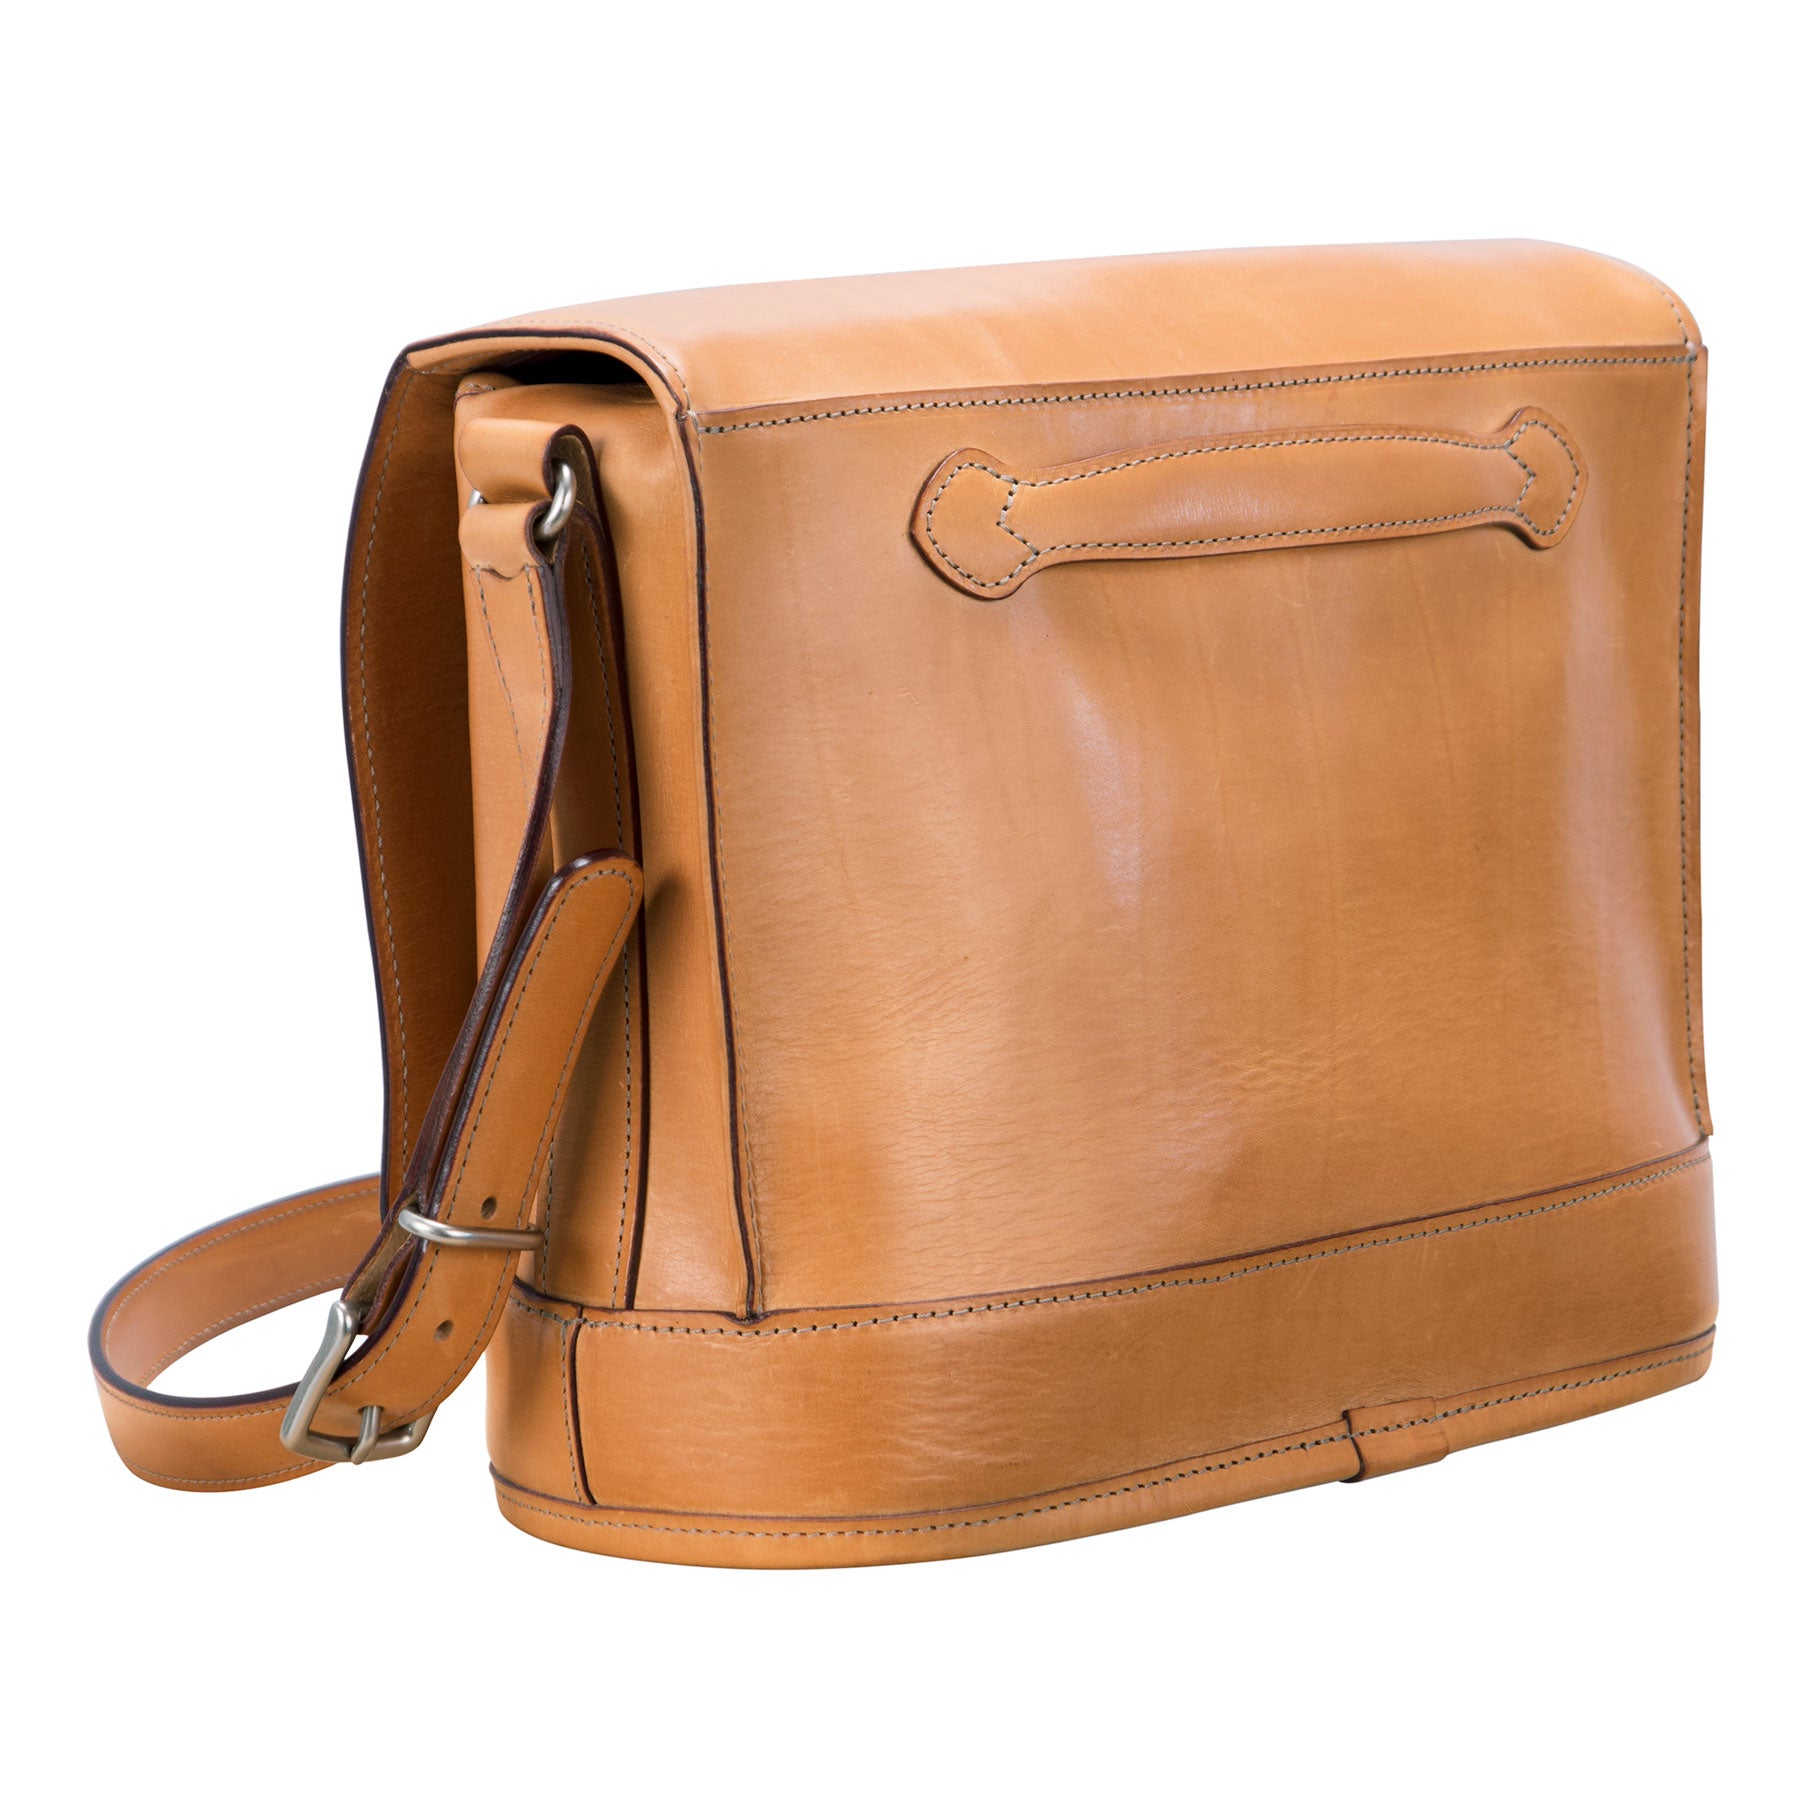 Pedestal Flapover Bag: hand-burnished leather